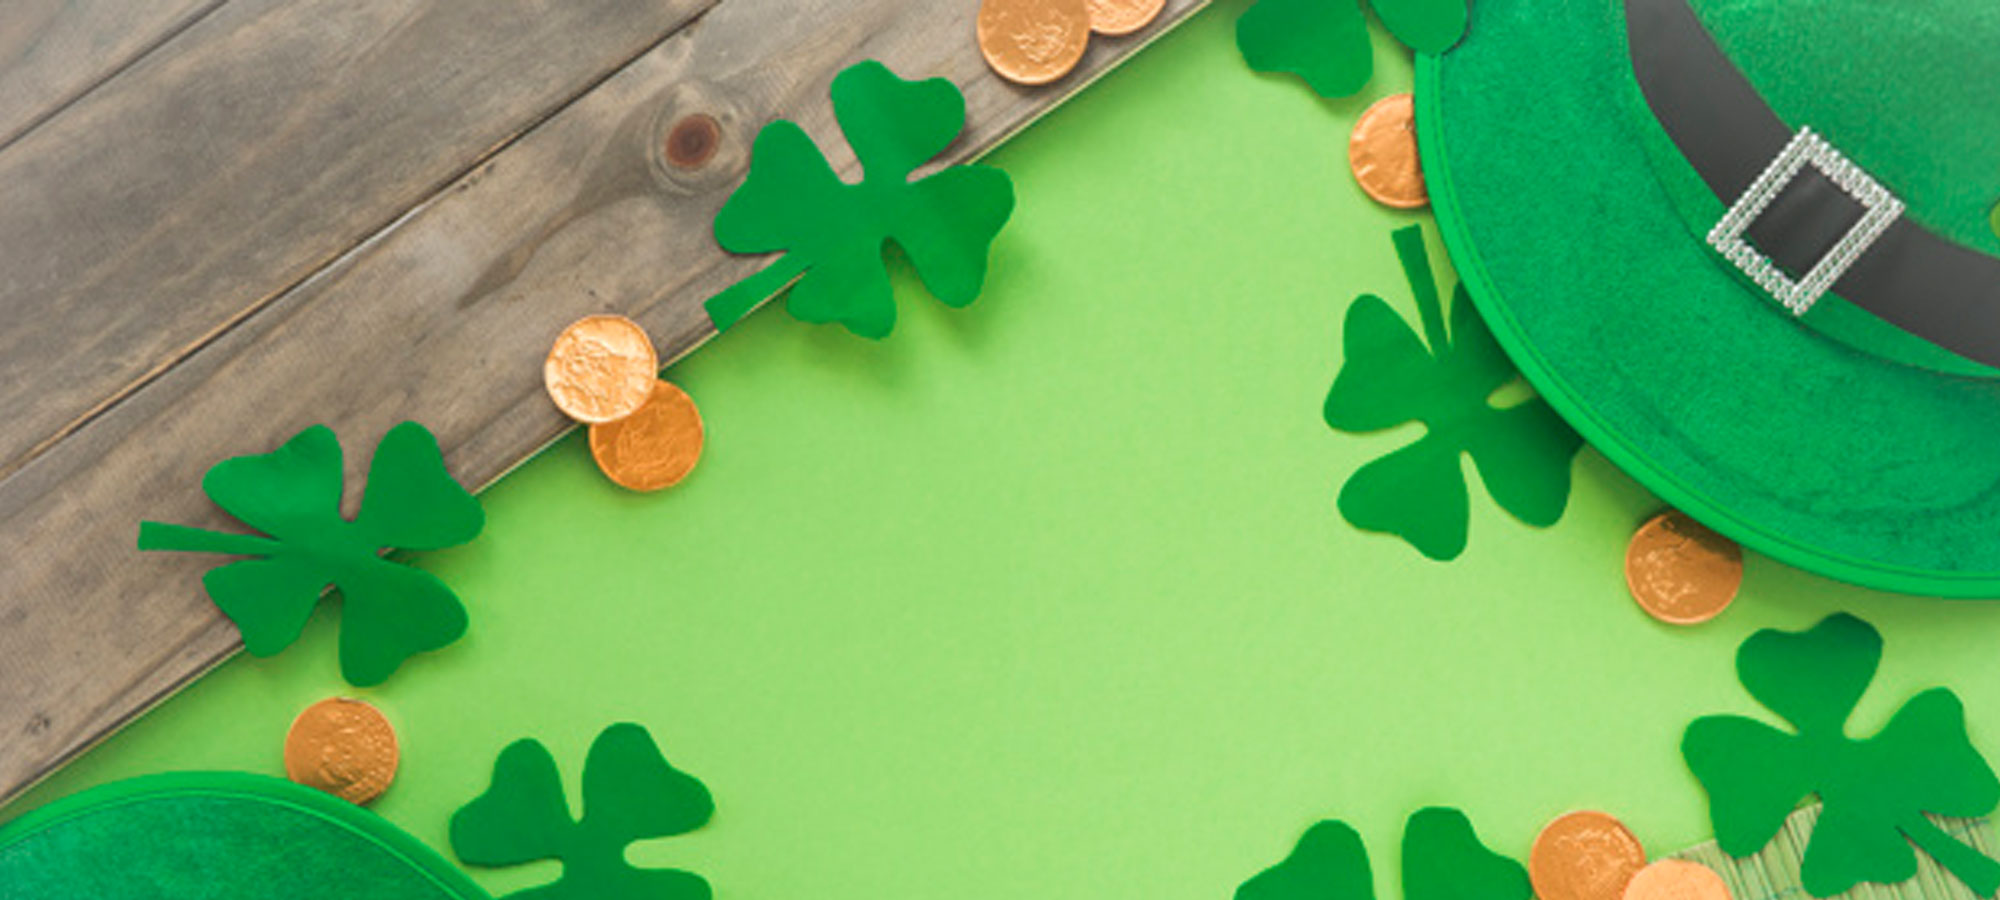 St.-Patricks-Day_Web-Banner.jpg